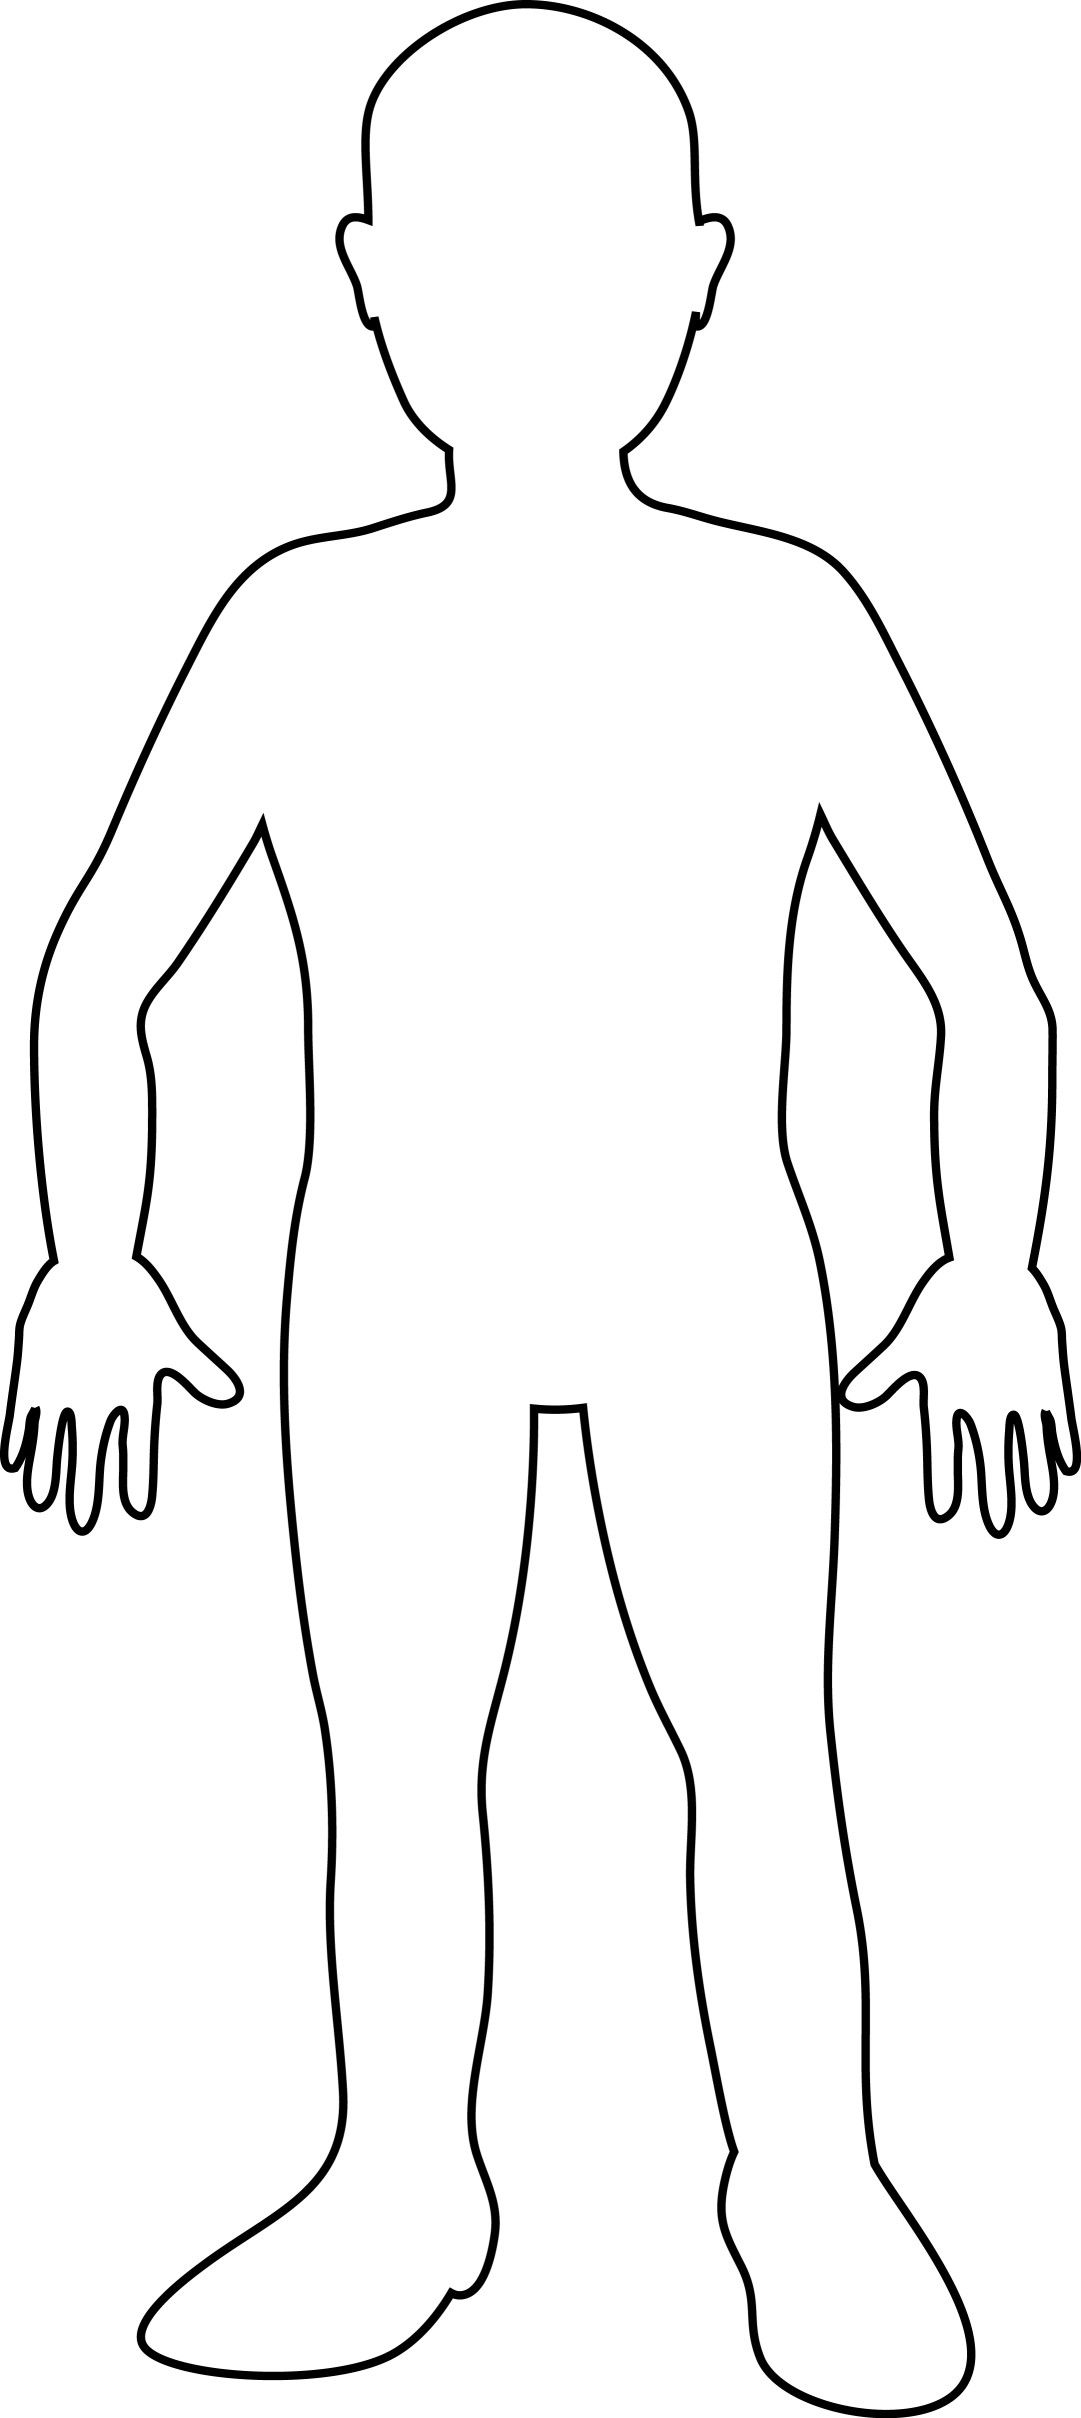 human-body-outlines-785.jpg (1081×2418)